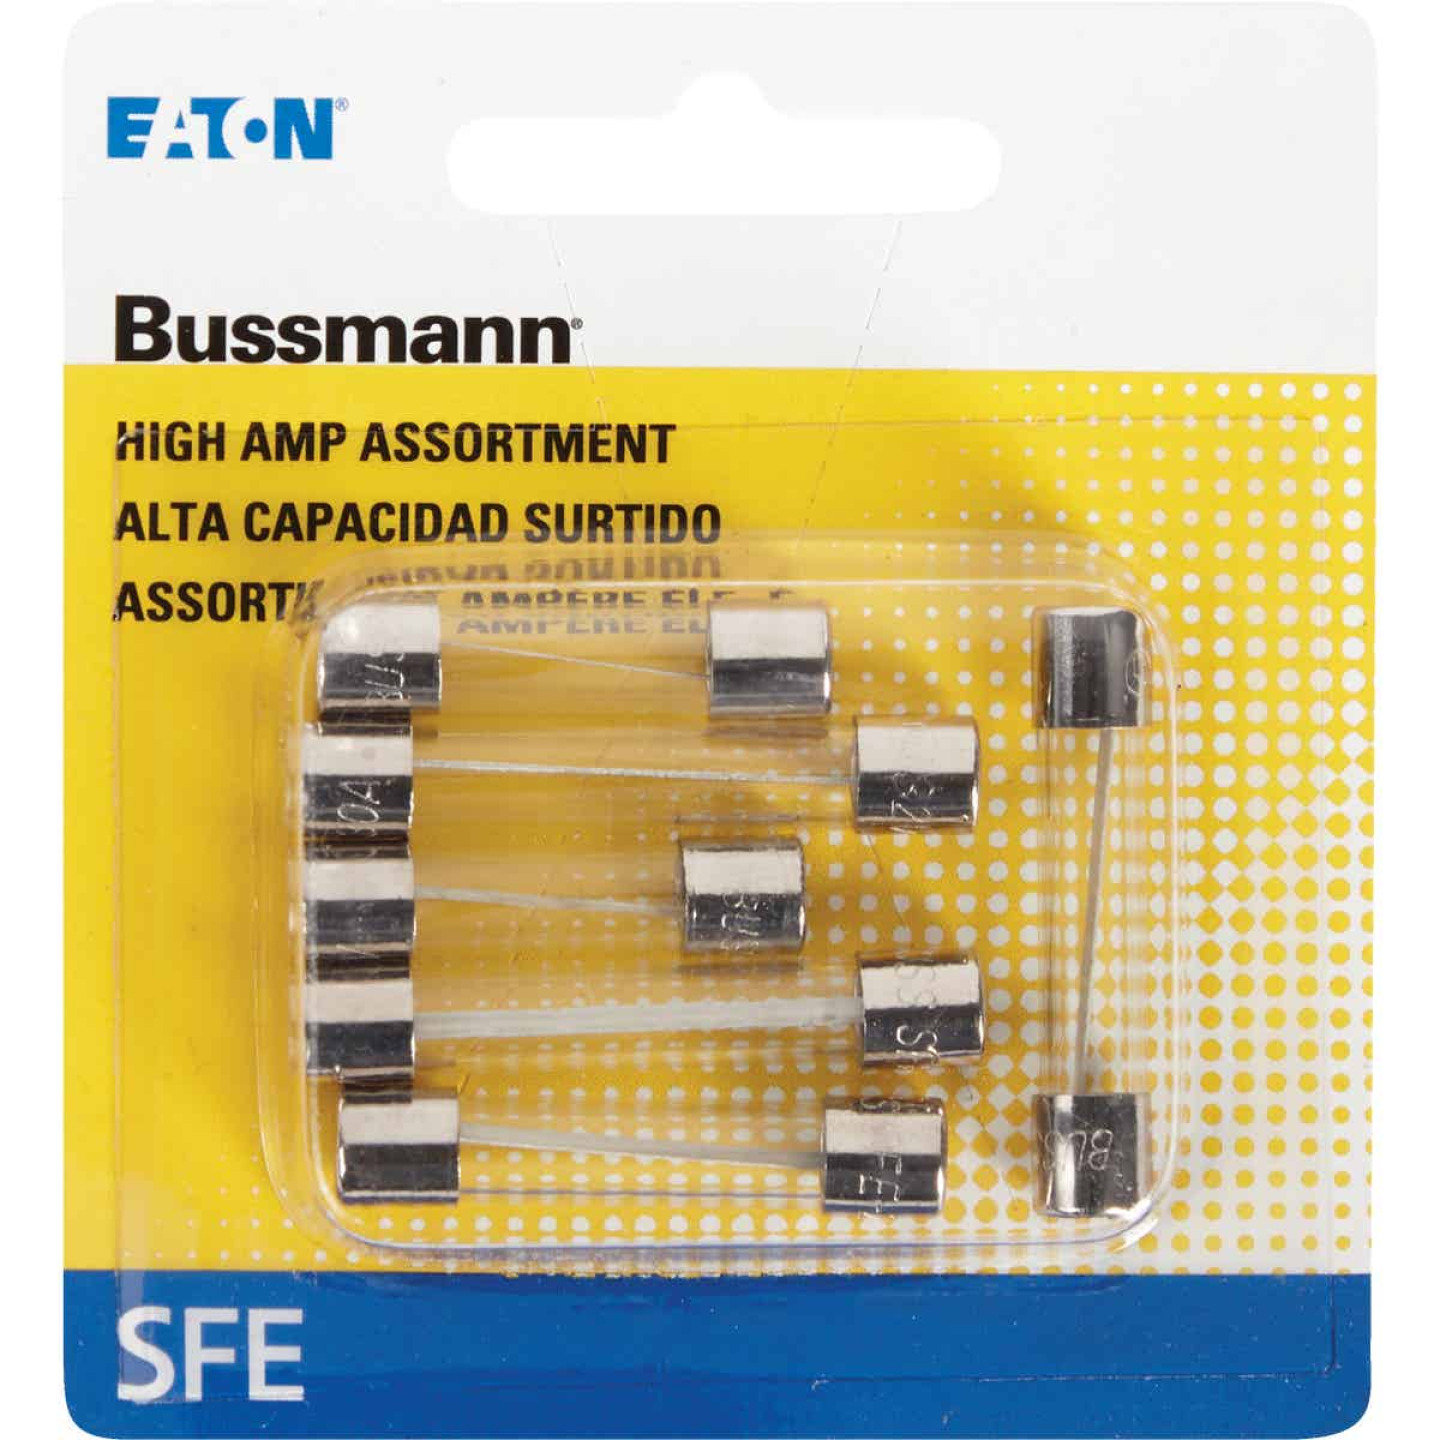 Bussmann SFE High Amp Fuse Assortment (7-Piece) Image 2